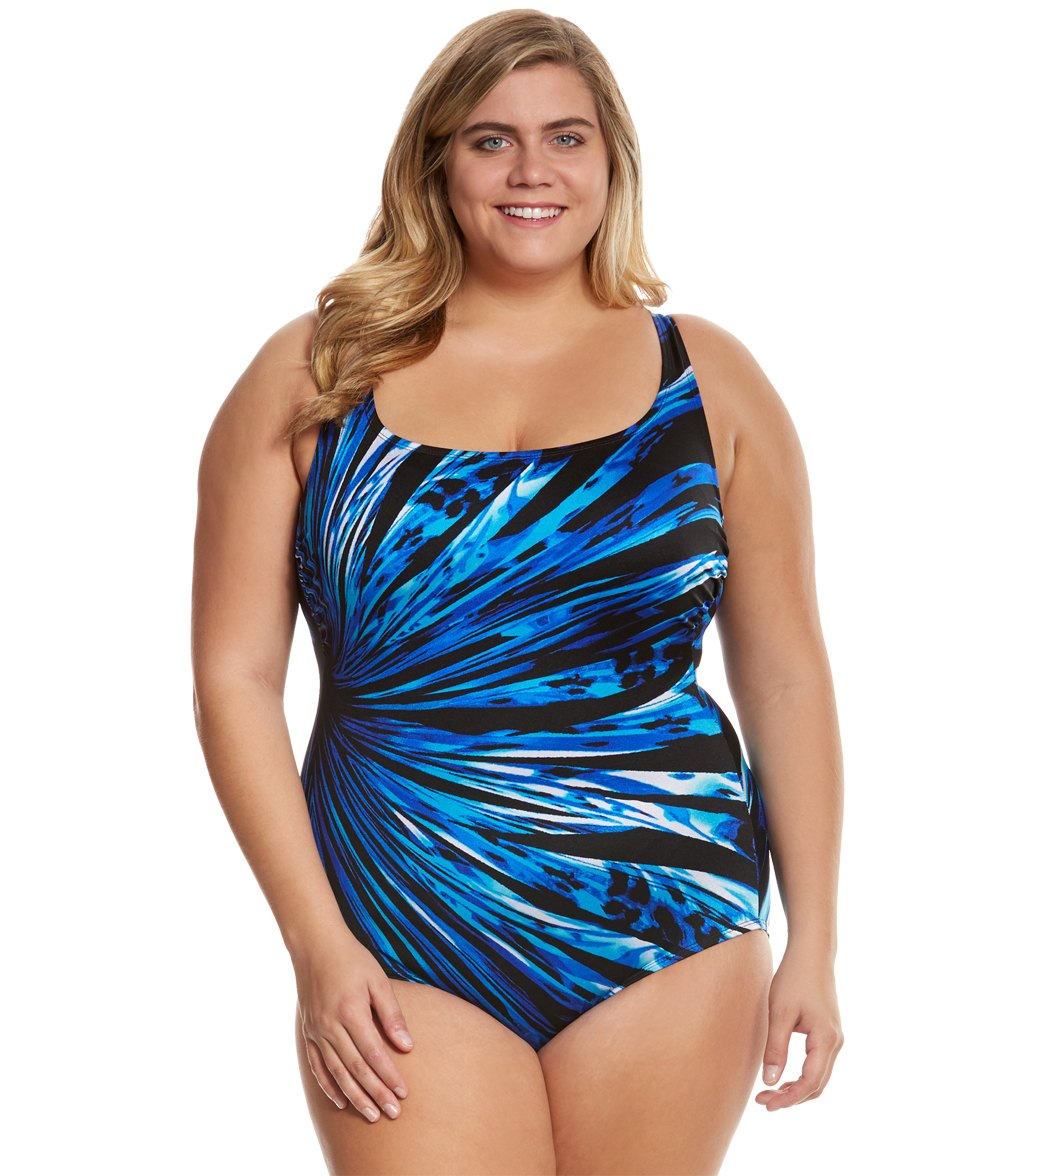 87f37ad3044 Layered one piece swimsuit One Piece Plus Size Swimsuit ...